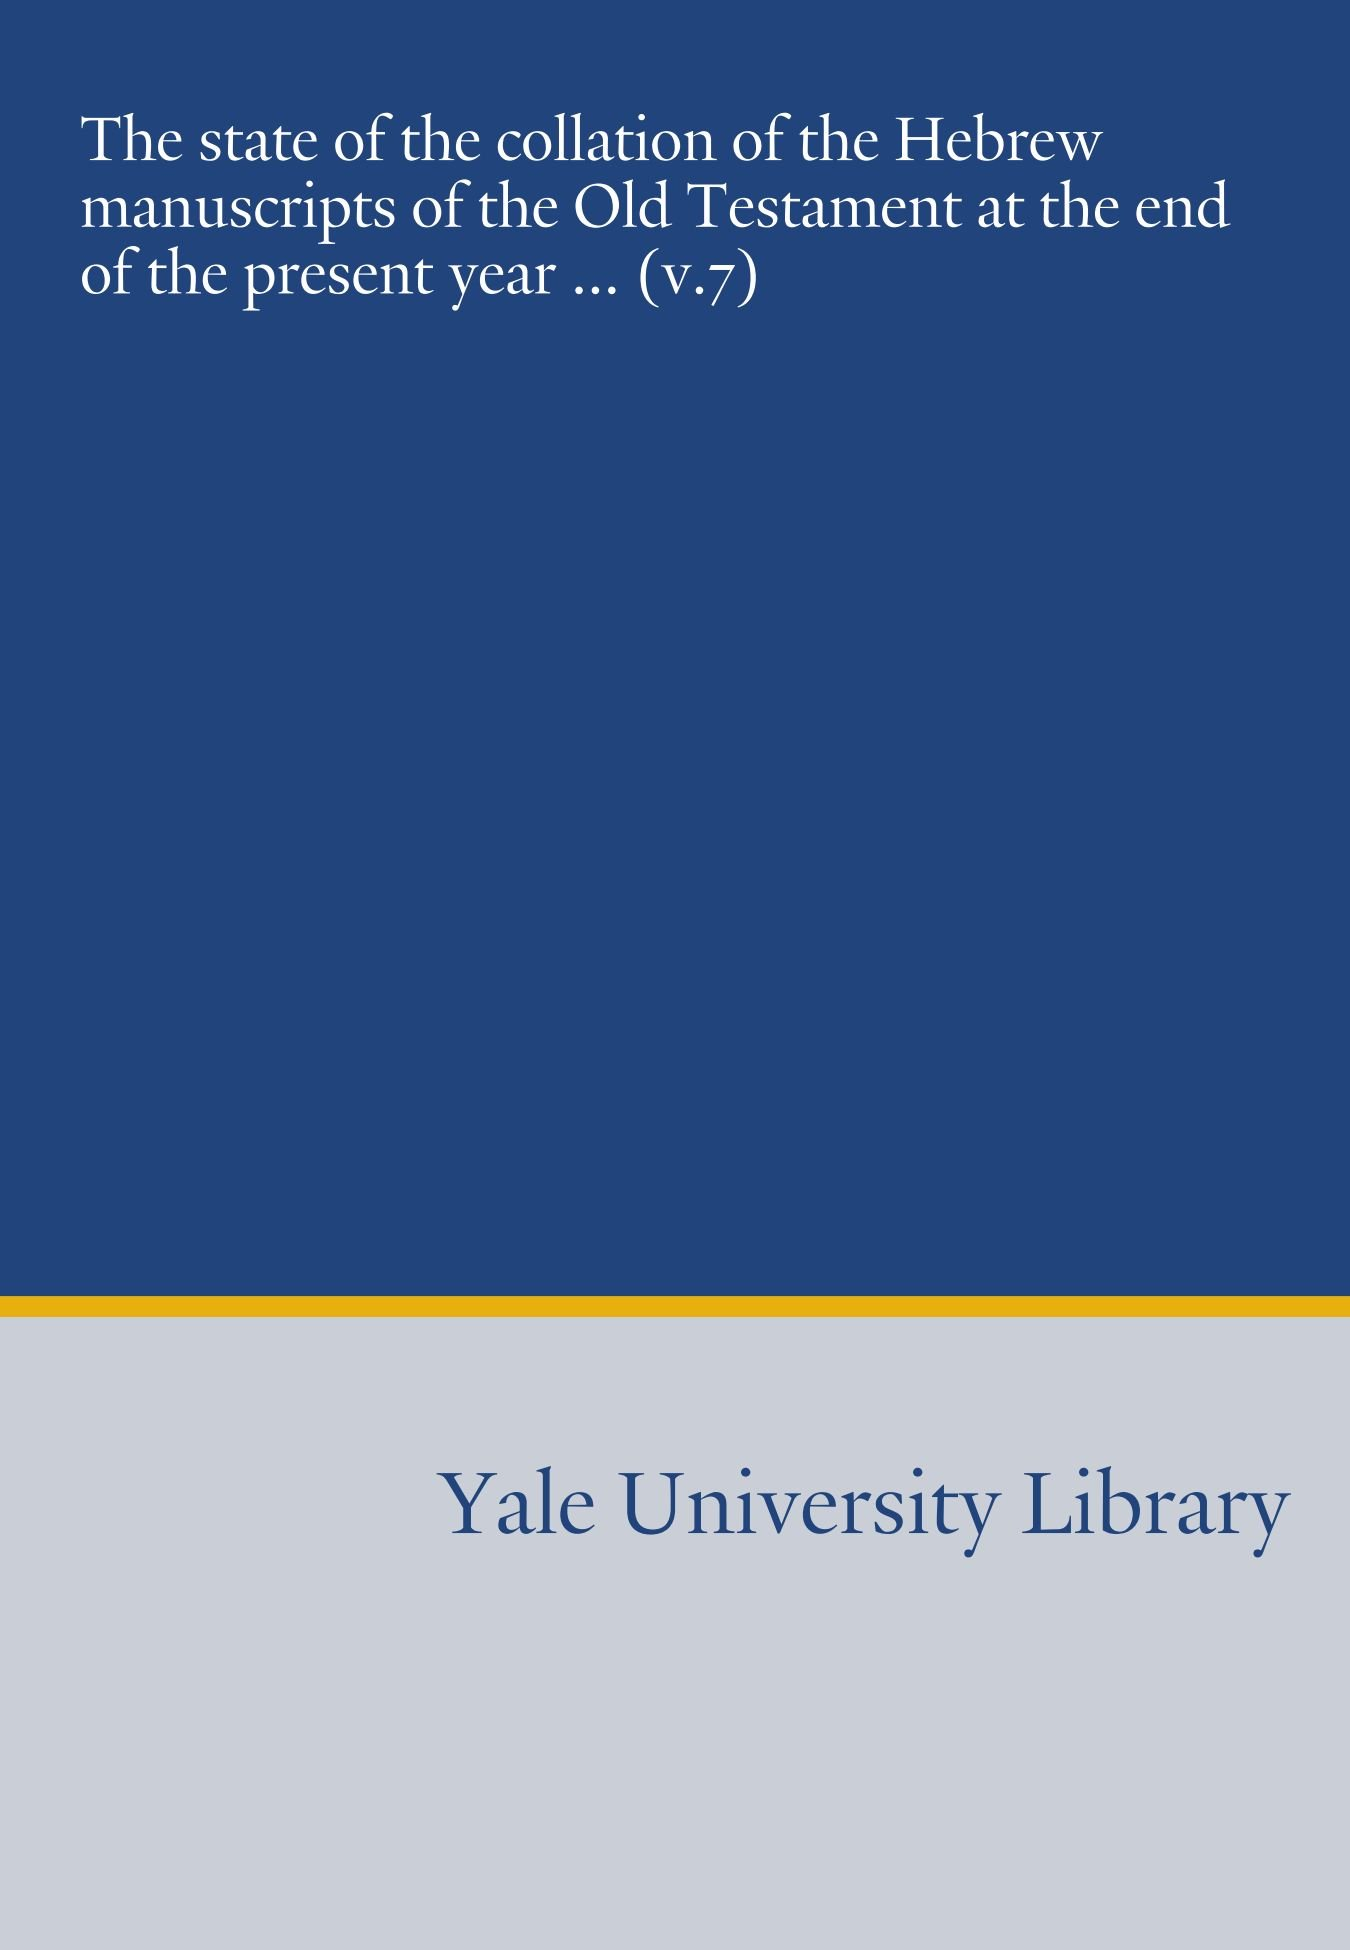 The state of the collation of the Hebrew manuscripts of the Old Testament at the end of the present year ... (v.7) PDF